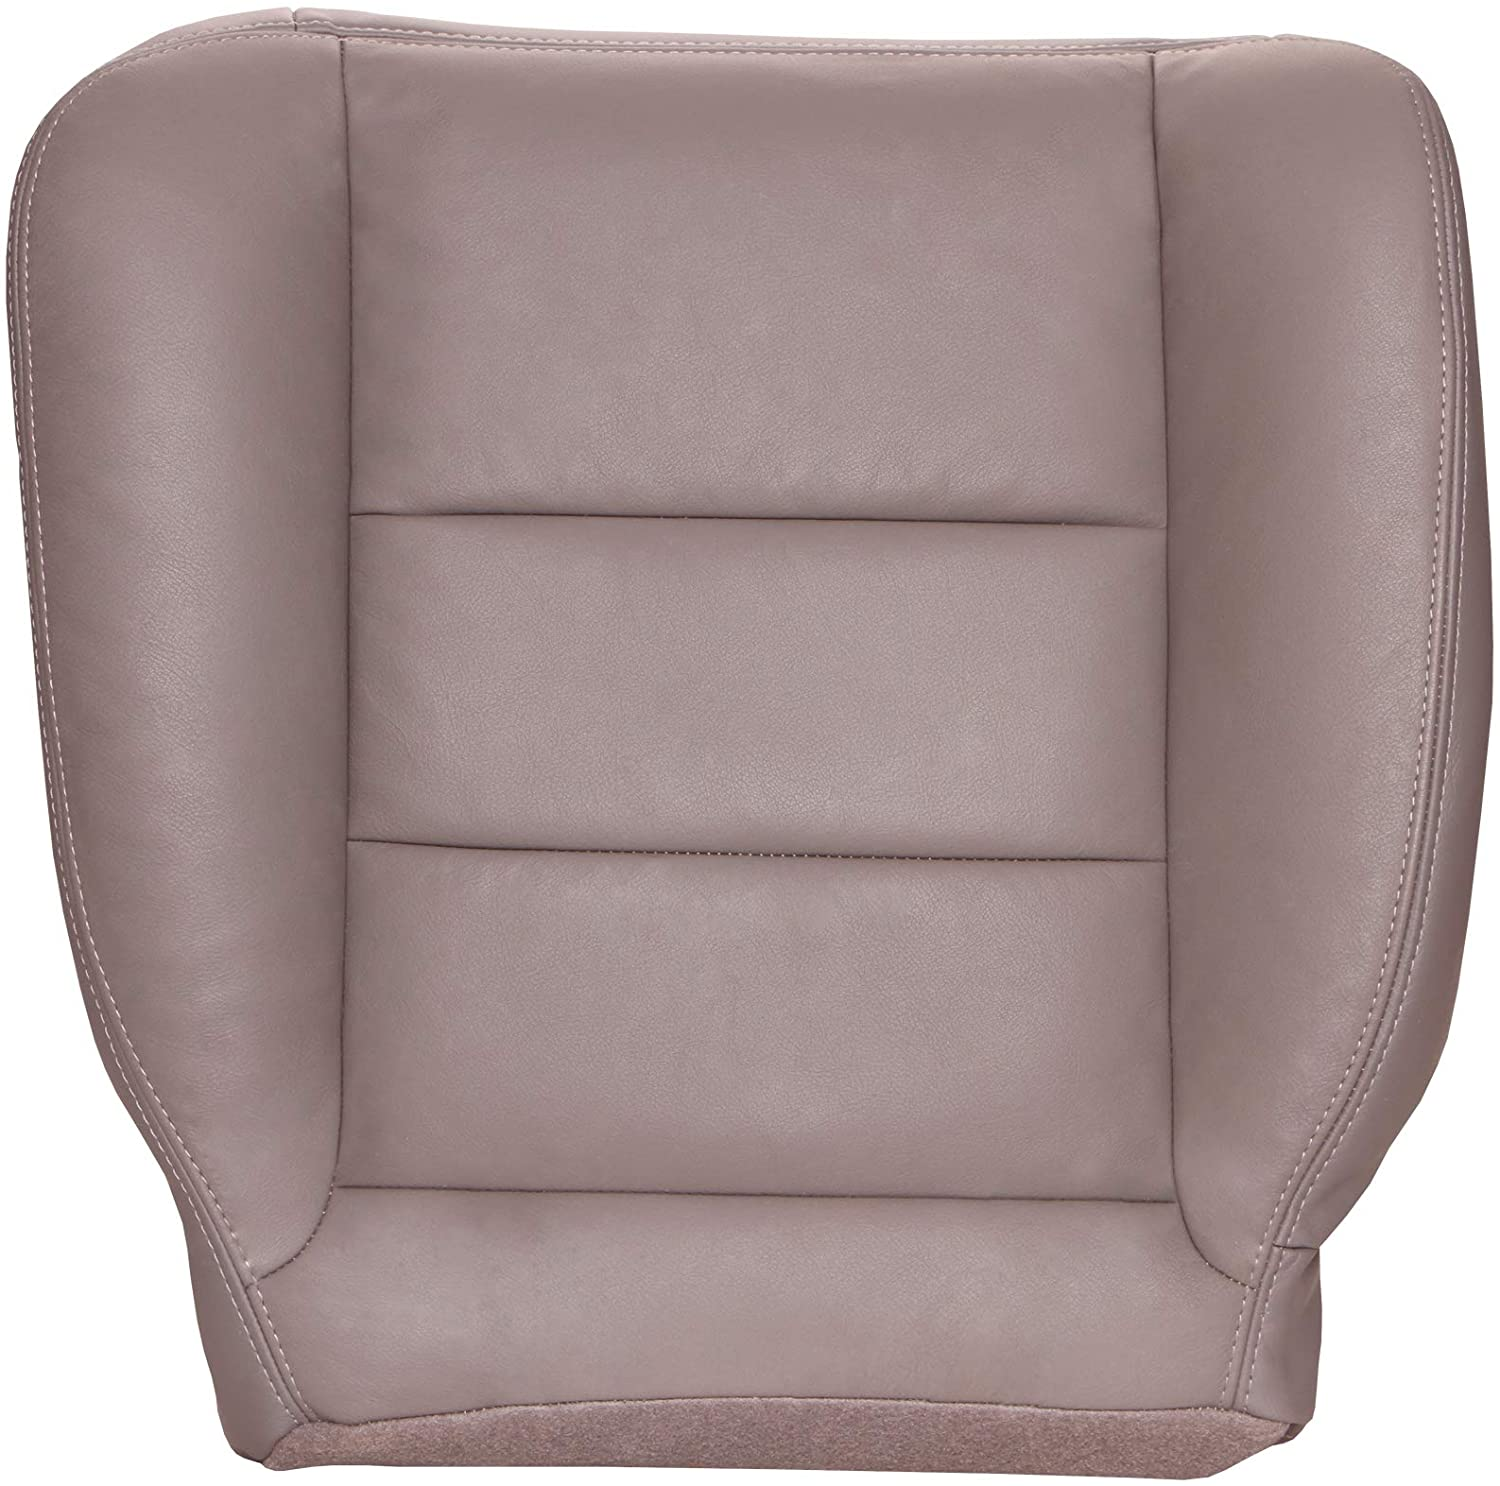 The Seat Shop Driver Bottom Replacement Leather Seat Cover - Medium Parchment Tan (Flare Seam) (Compatible with 2003-2004 Ford F250 and F350 Super Duty Lariat Extended Cab)